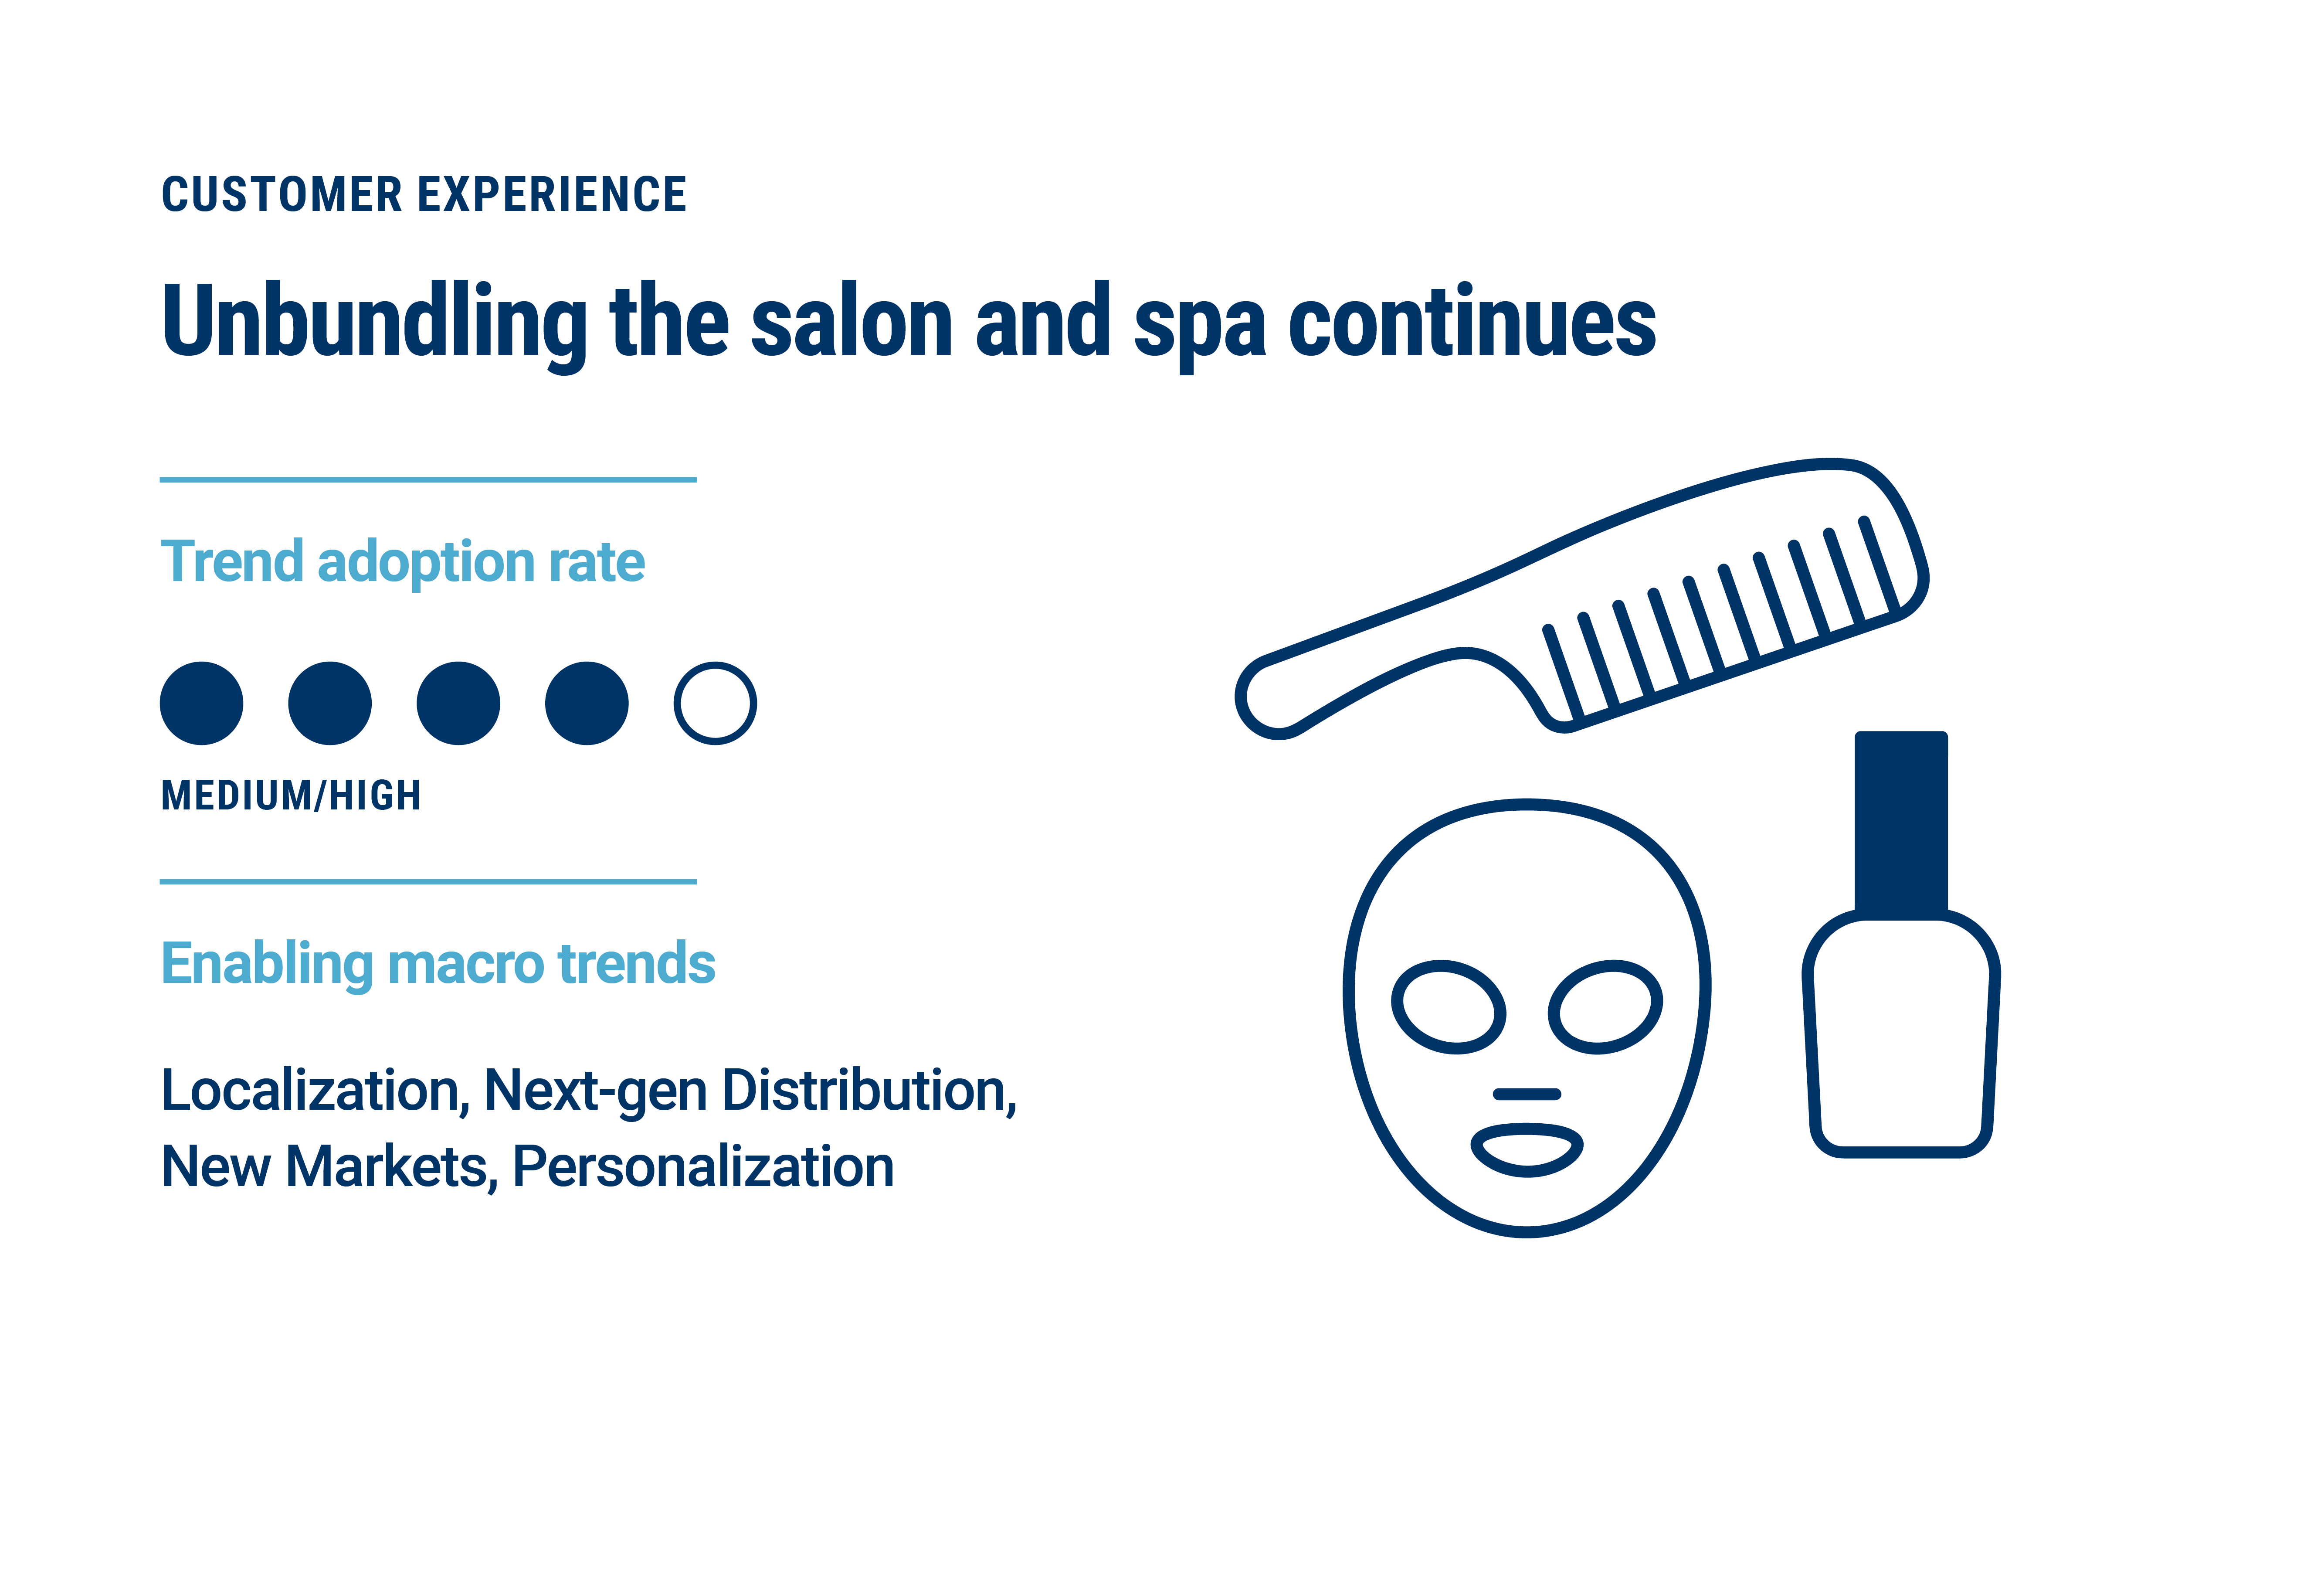 Graphic highlighting the beauty trend of unbundling the salon and spa, with a medium/high trend adoption rate.